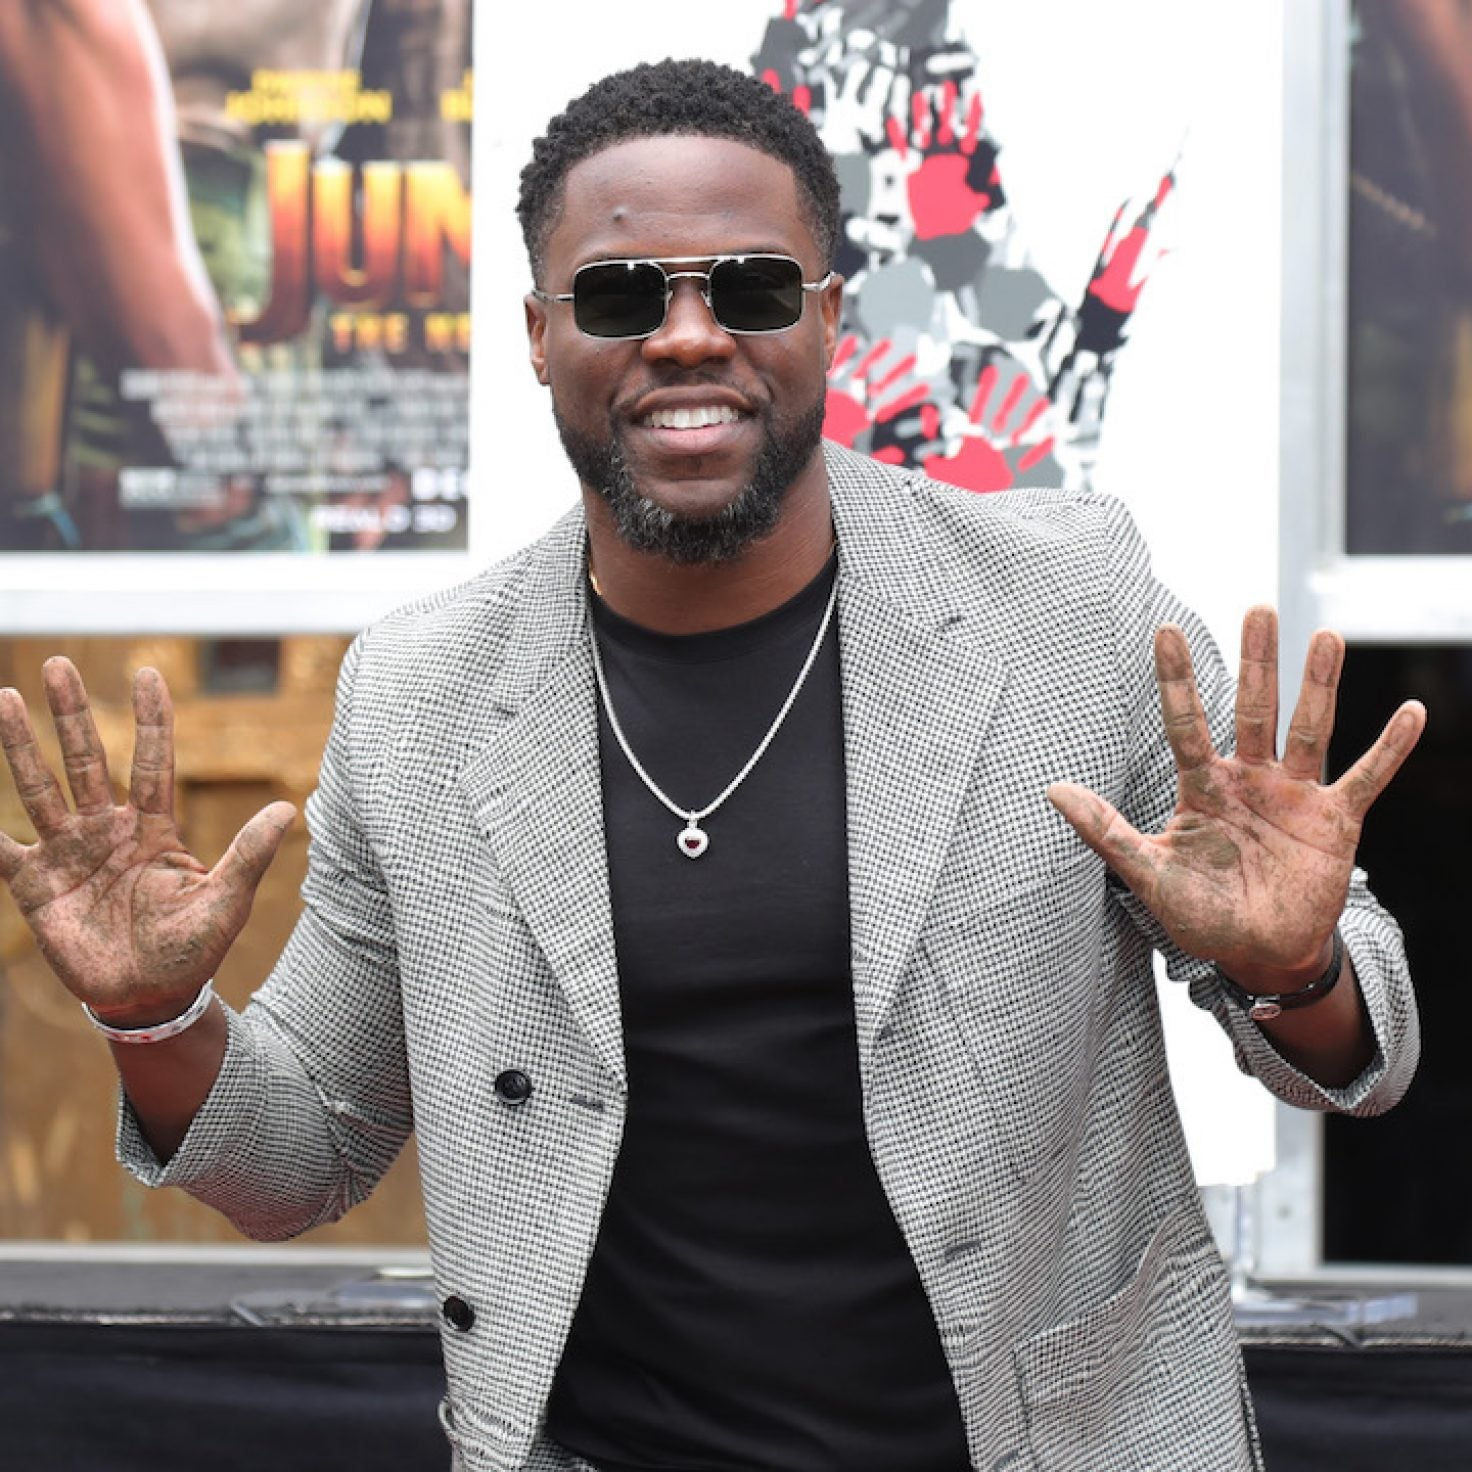 Kevin Hart Receives Foot And Handprint Ceremony At Historic TCL Chinese Theatre